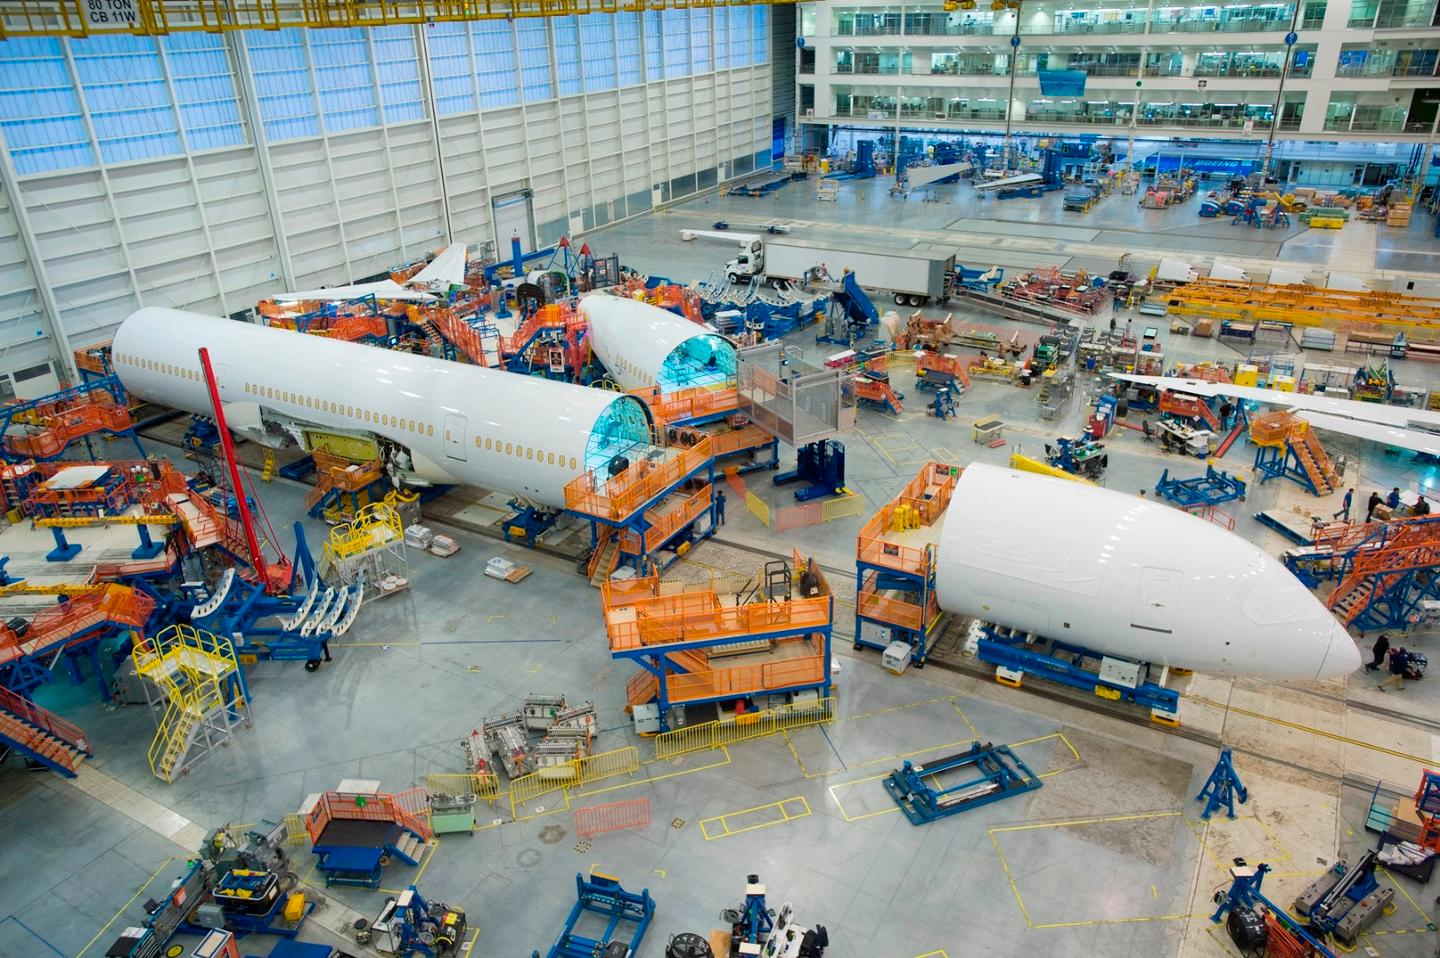 Boeing says the 787-10 Dreamliner is 25 percent more efficient in terms of fuel per seat and emissions than the aircraft it will replace